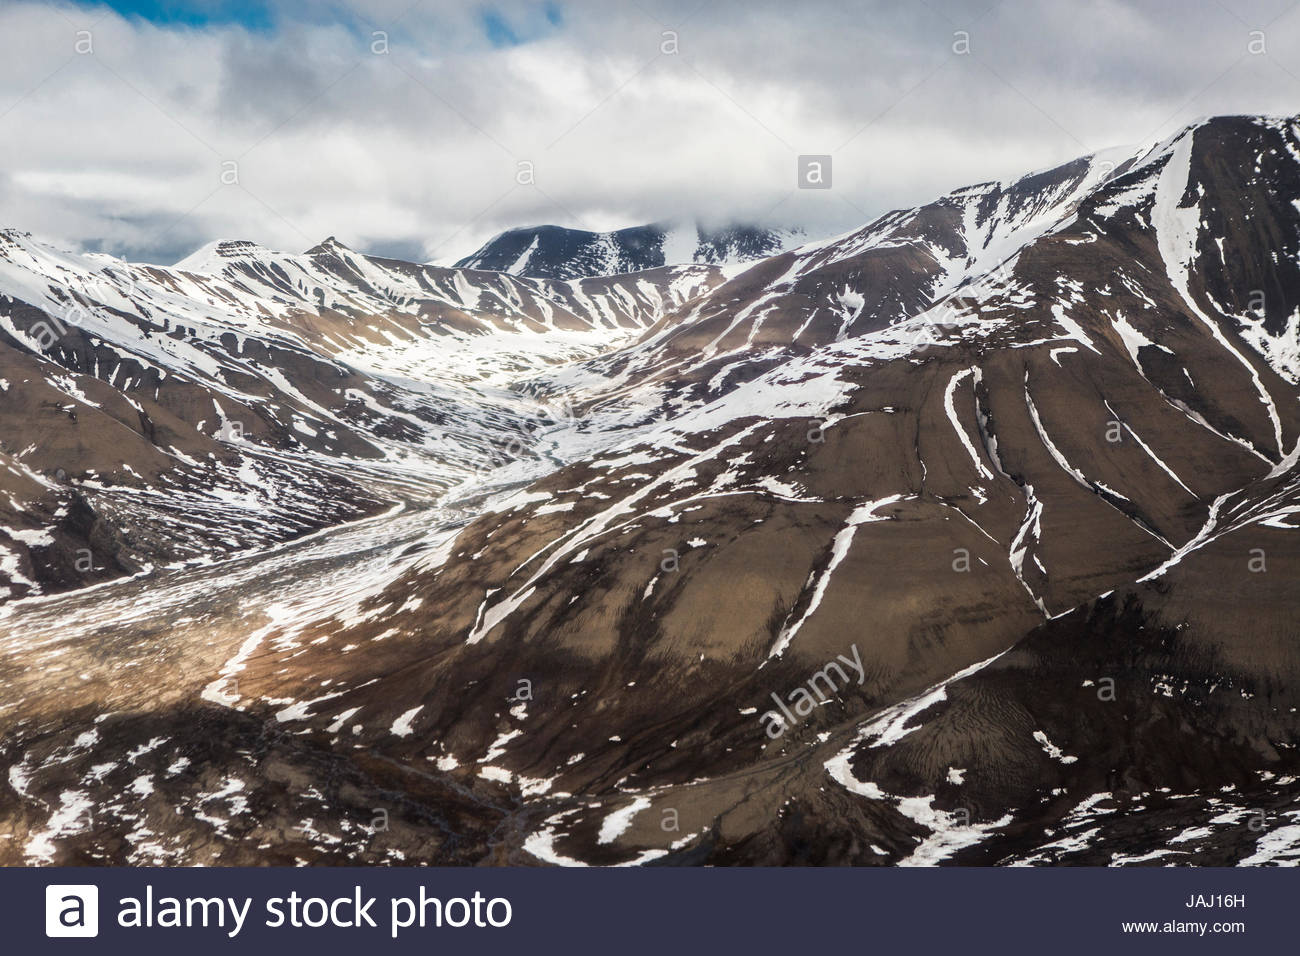 The mountains of Spitsbergen, near the town of Longyearbyen. - Stock Image